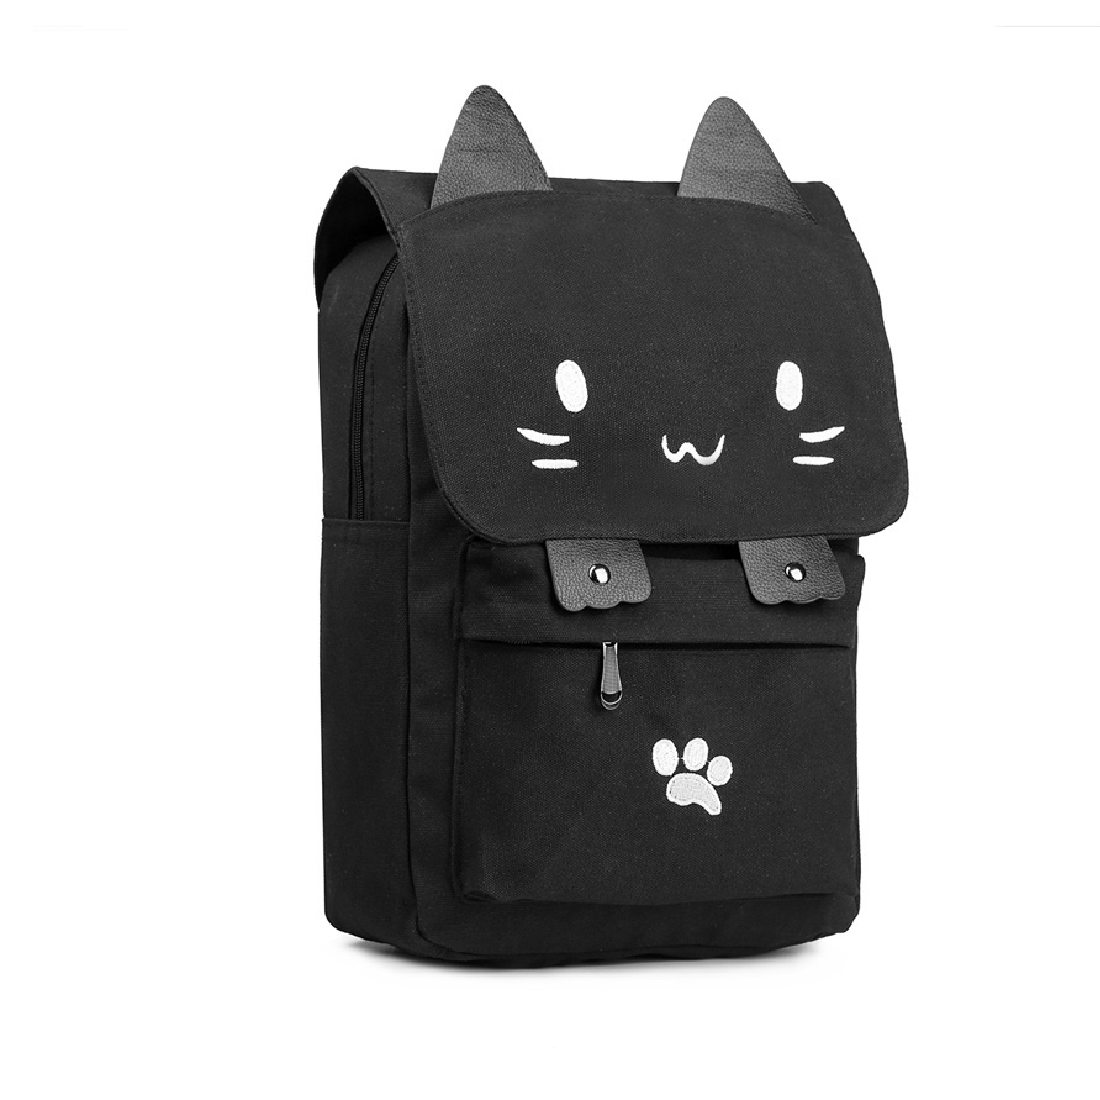 1cb31968d5 Backpack Canvas School Casual Bag Cute Cat Cartoon Embroidery Black Teenage  Girls Multi Colors Fashion Backpacks